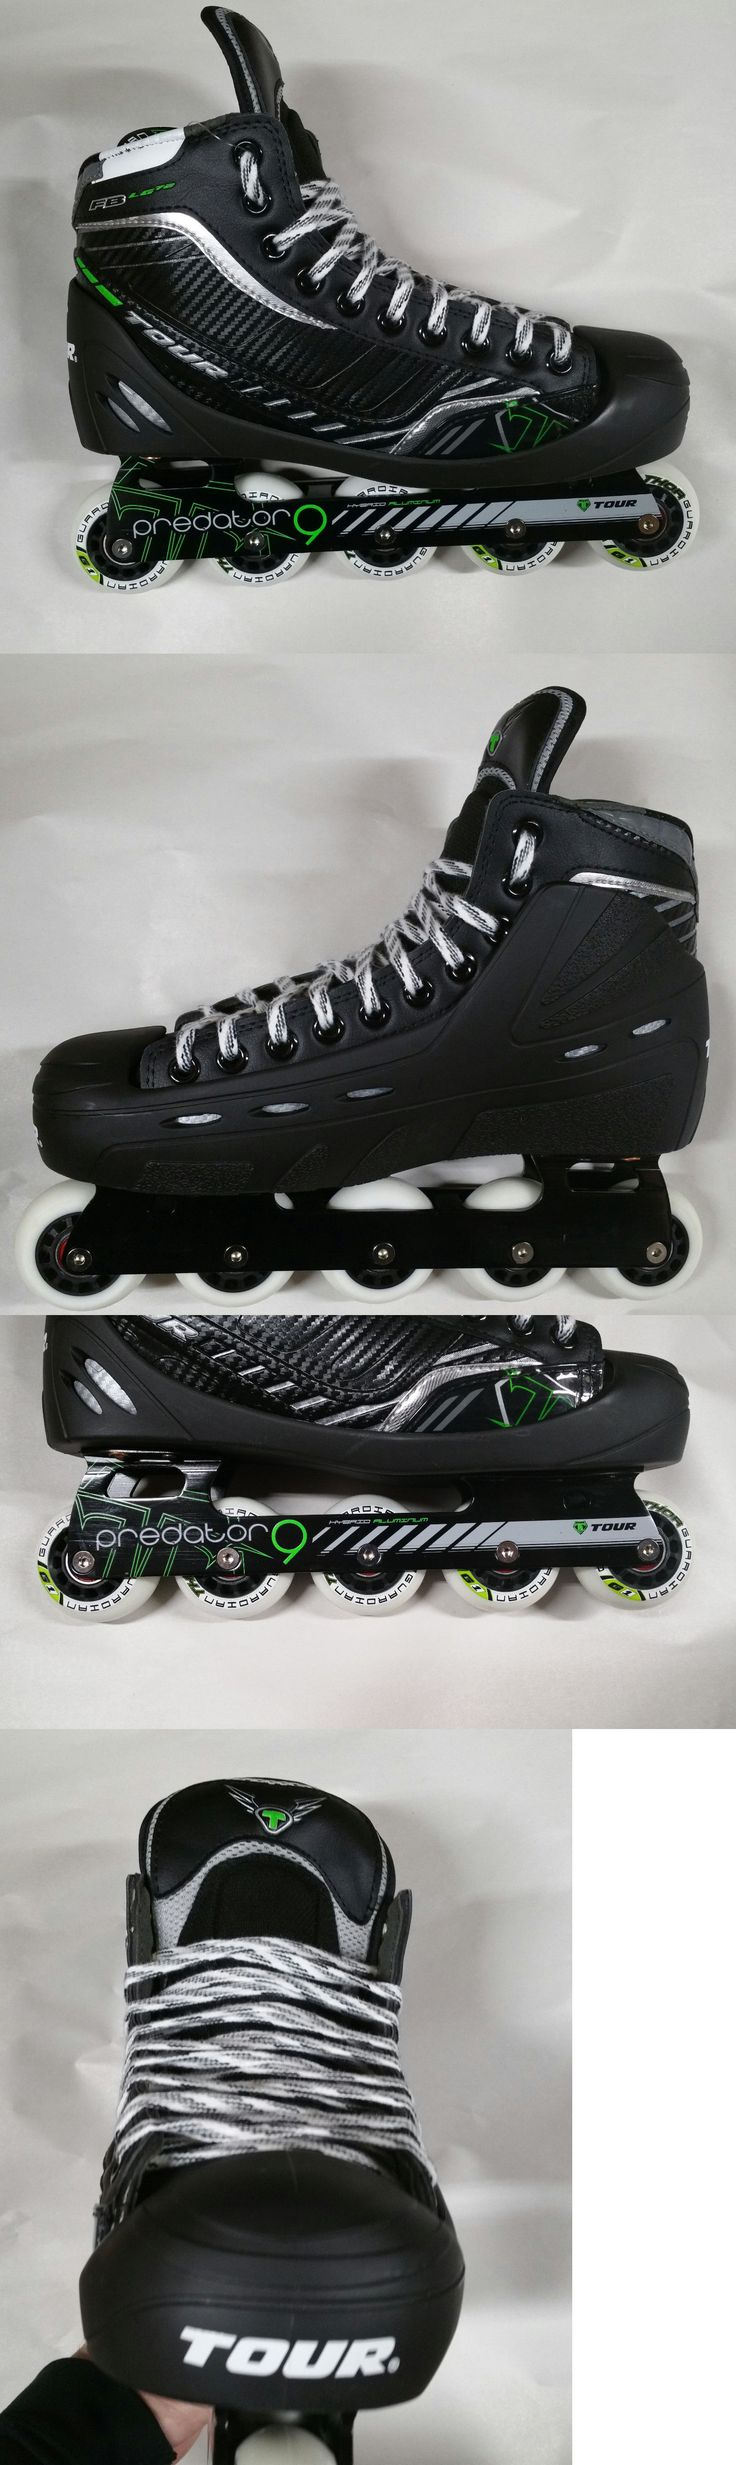 Roller Hockey 64669: Tour Fish Bonelite Lg72 Senior Roller Hockey Goalie Skate Size 9 D New In Box BUY IT NOW ONLY: $219.99